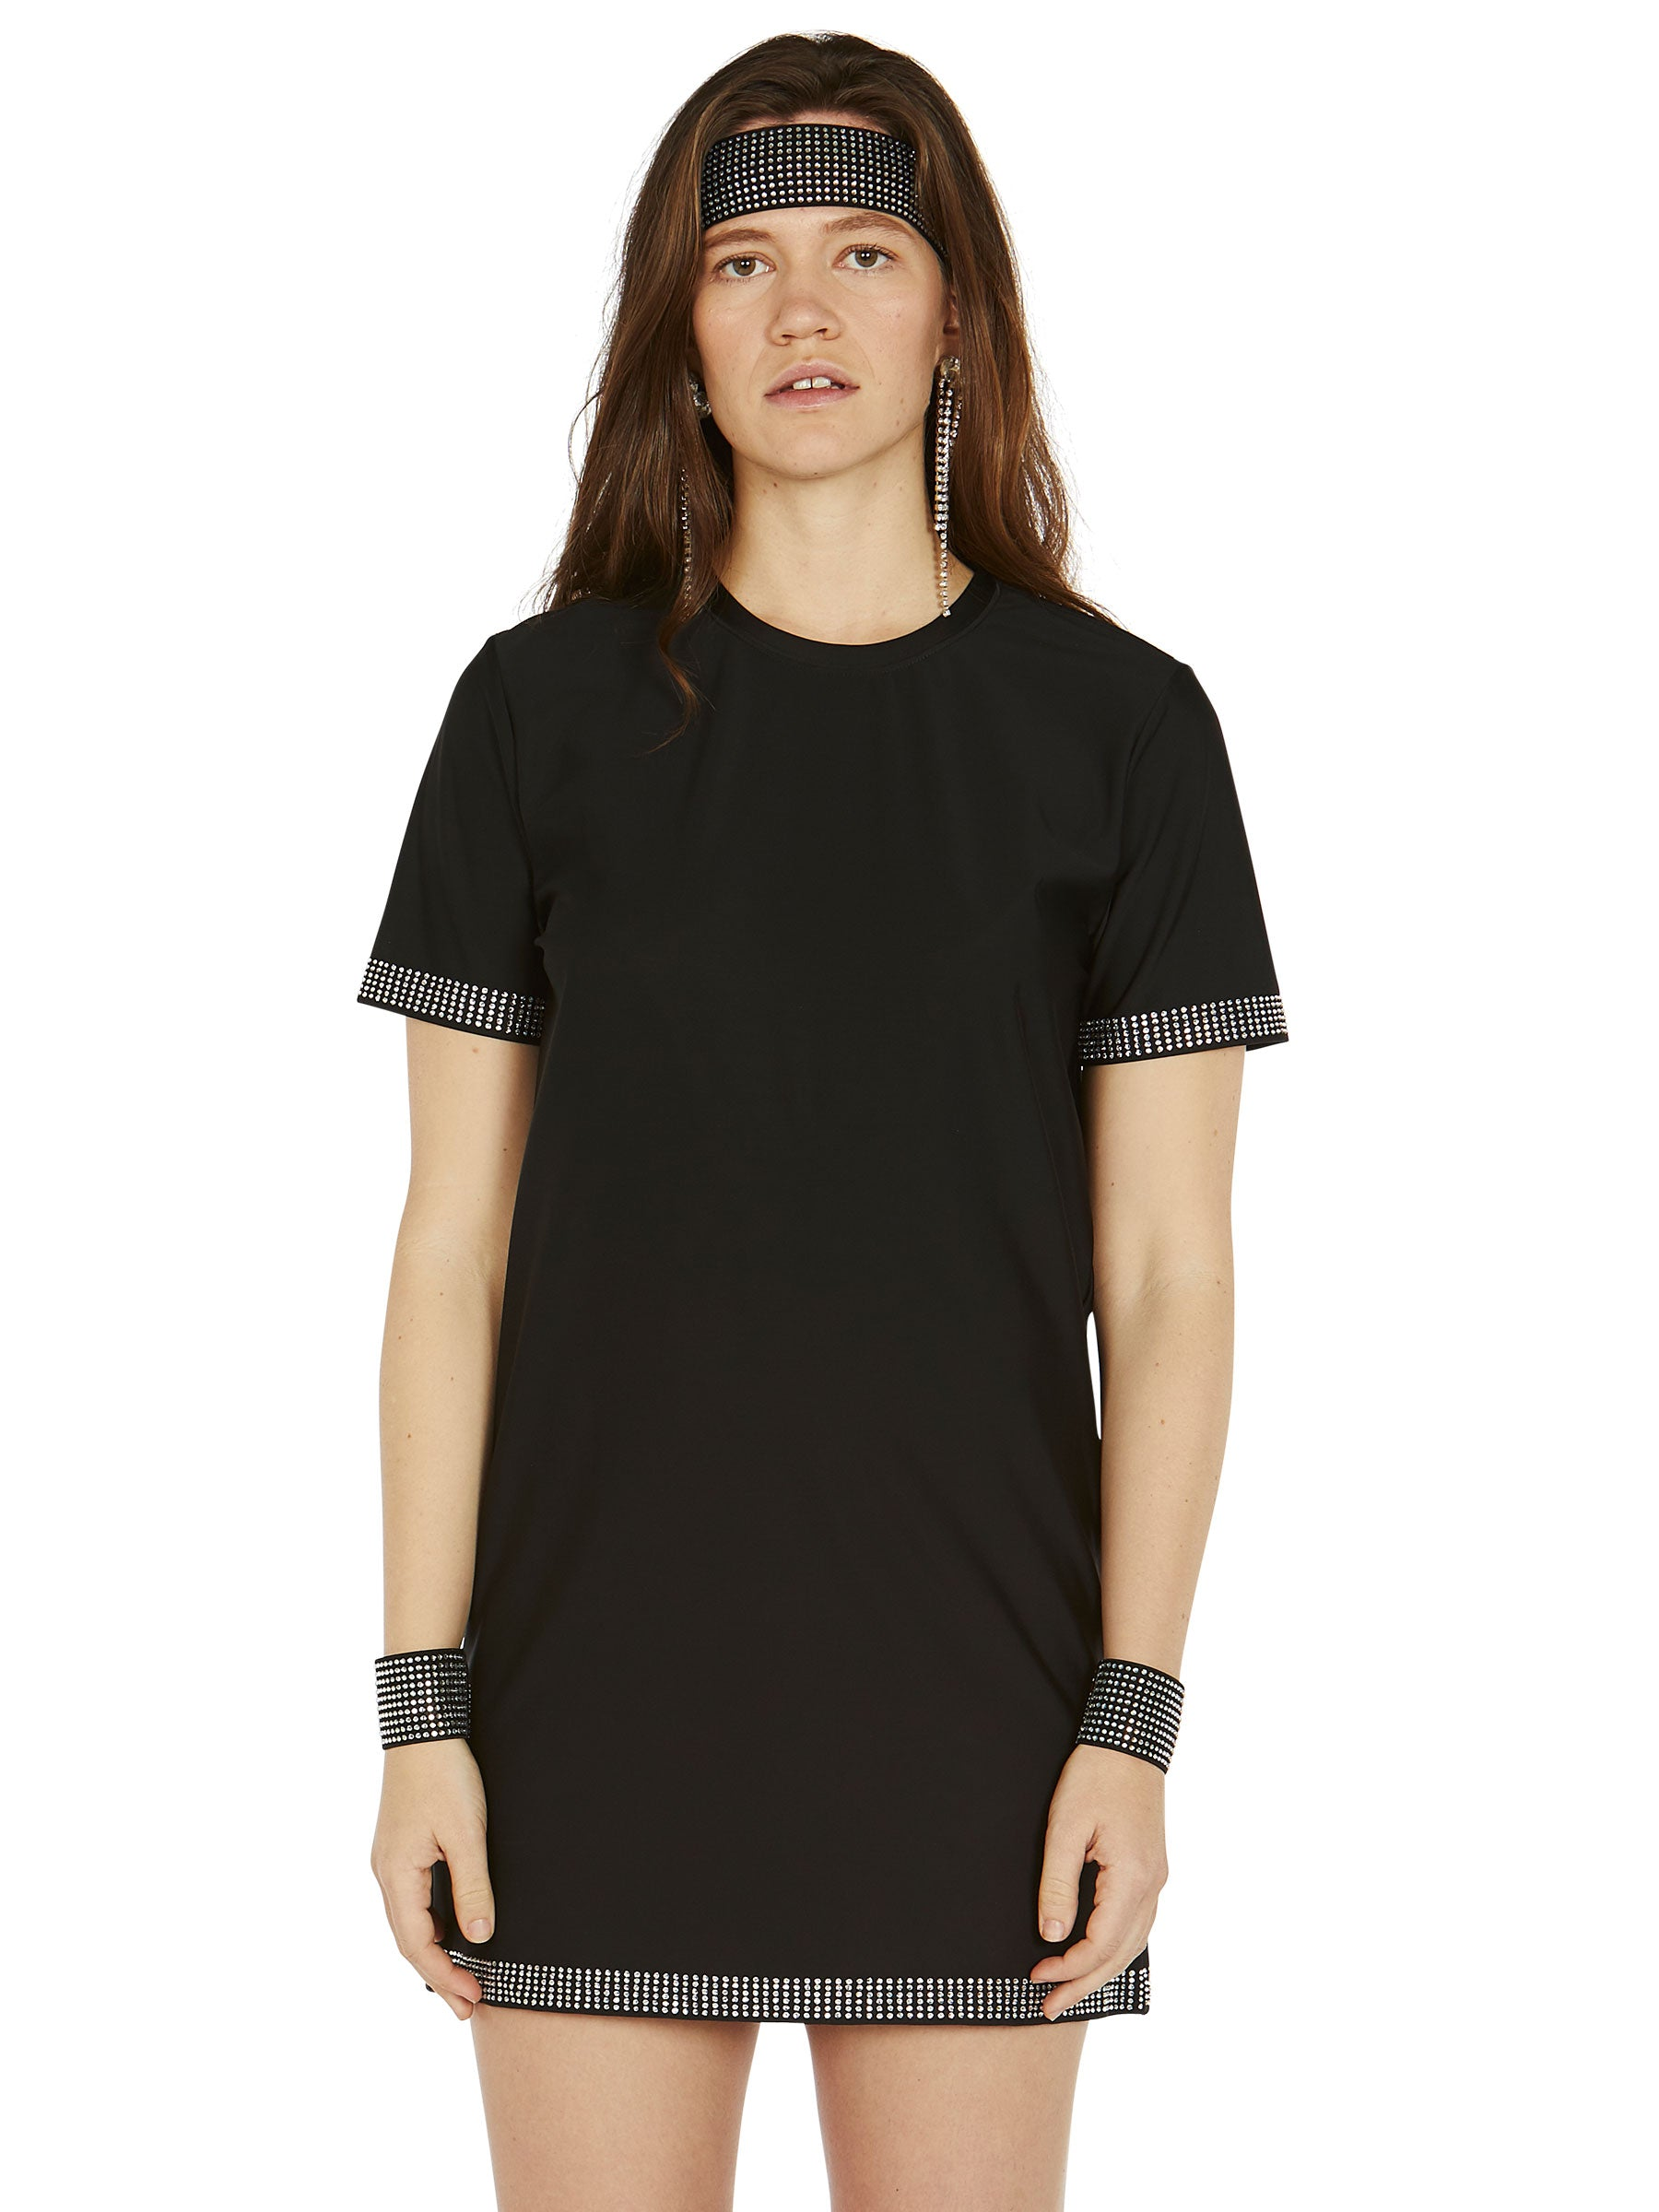 odd92 Adam Selman Sport Crystal T Mini Dress Spring/Summer 2019 Womenswear - 3